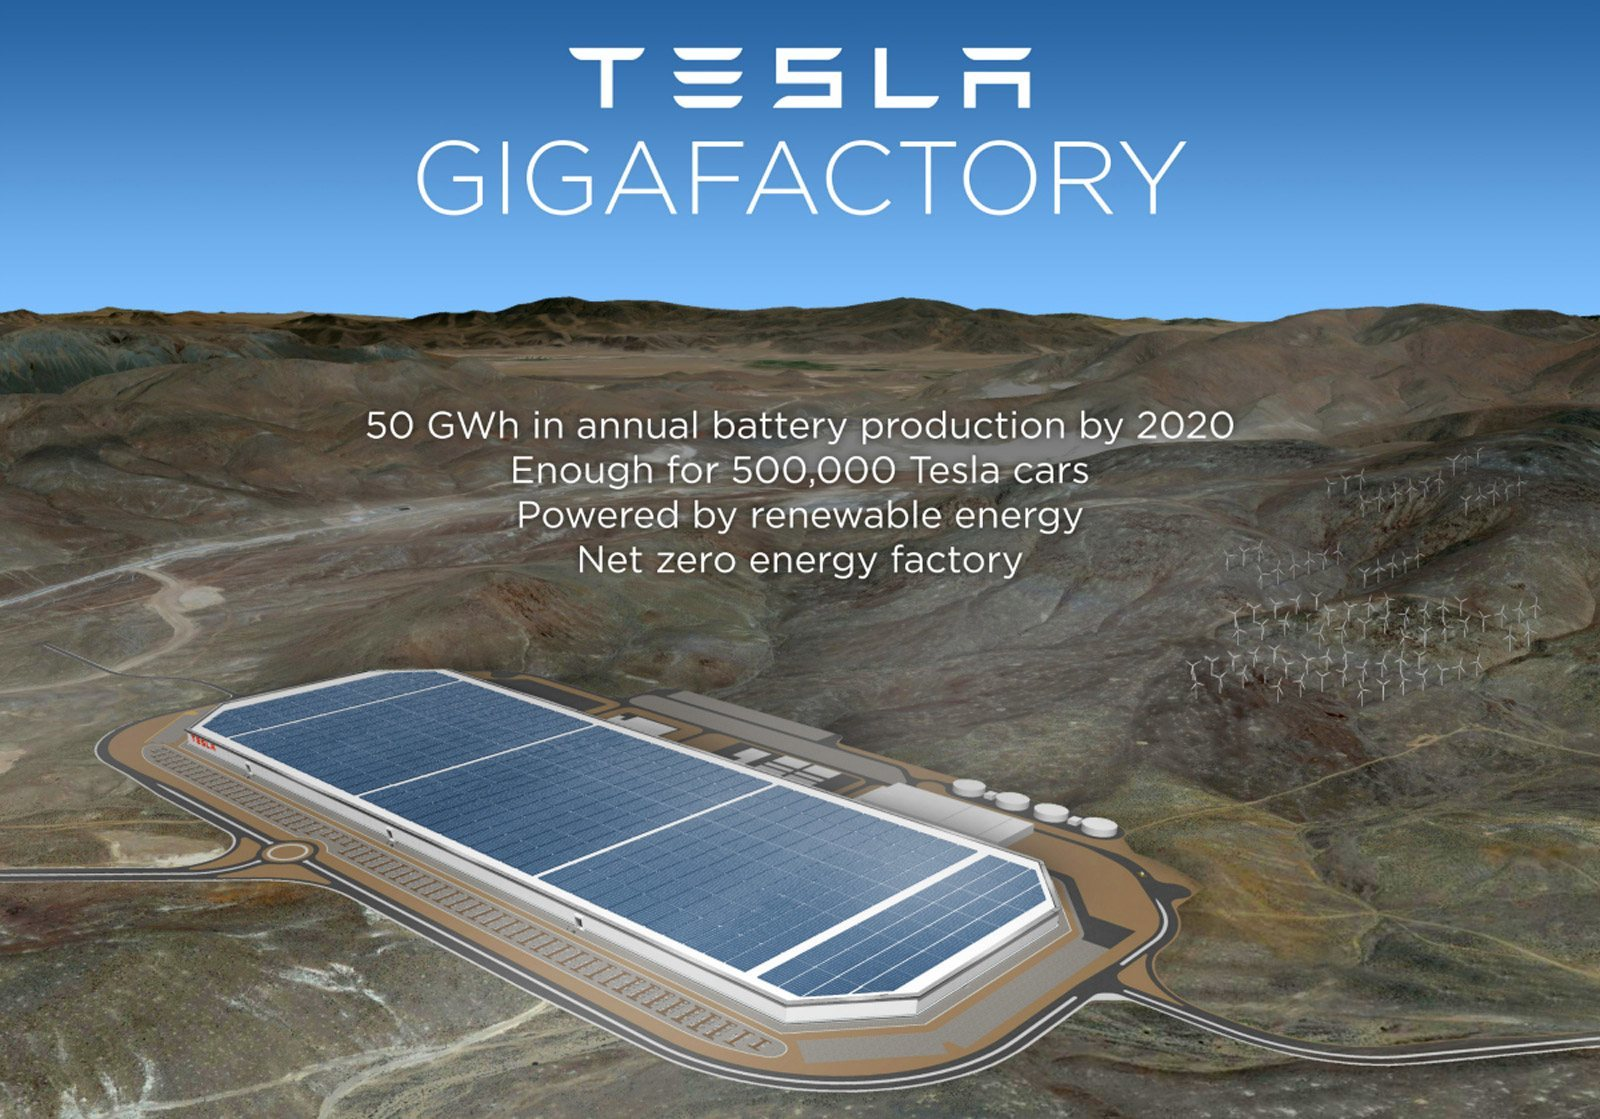 Gigafactory will be the world's largest battery factory